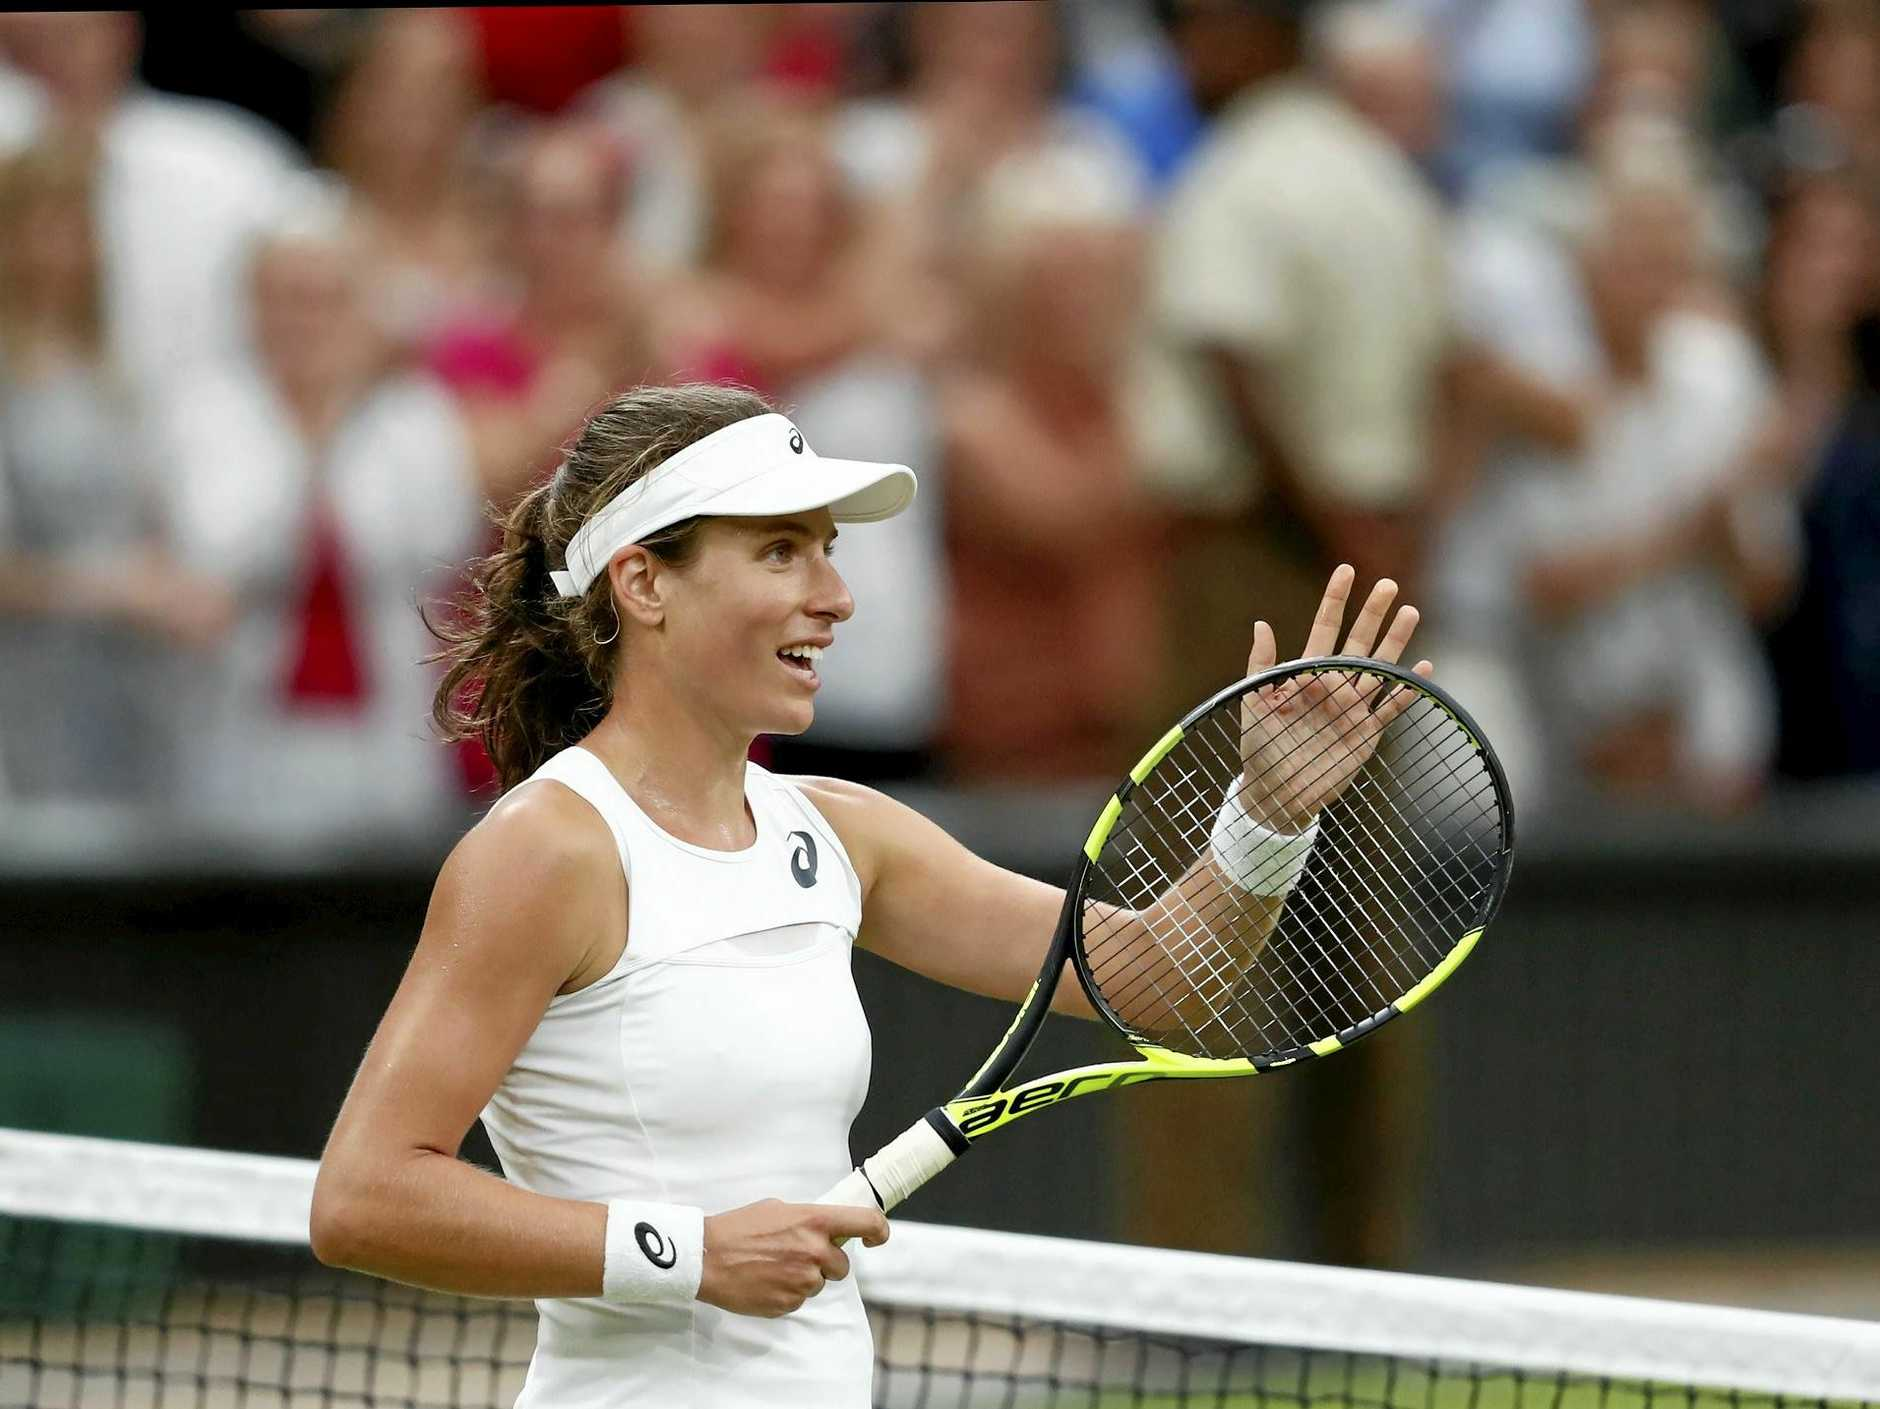 epa06081806 Johanna Konta of Britain celebrates winning against Simona Halep of Romania during their quarter final match for the Wimbledon Championships at the All England Lawn Tennis Club, in London, Britain, 11 July 2017.  EPA/NIC BOTHMA EDITORIAL USE ONLY/NO COMMERCIAL SALES